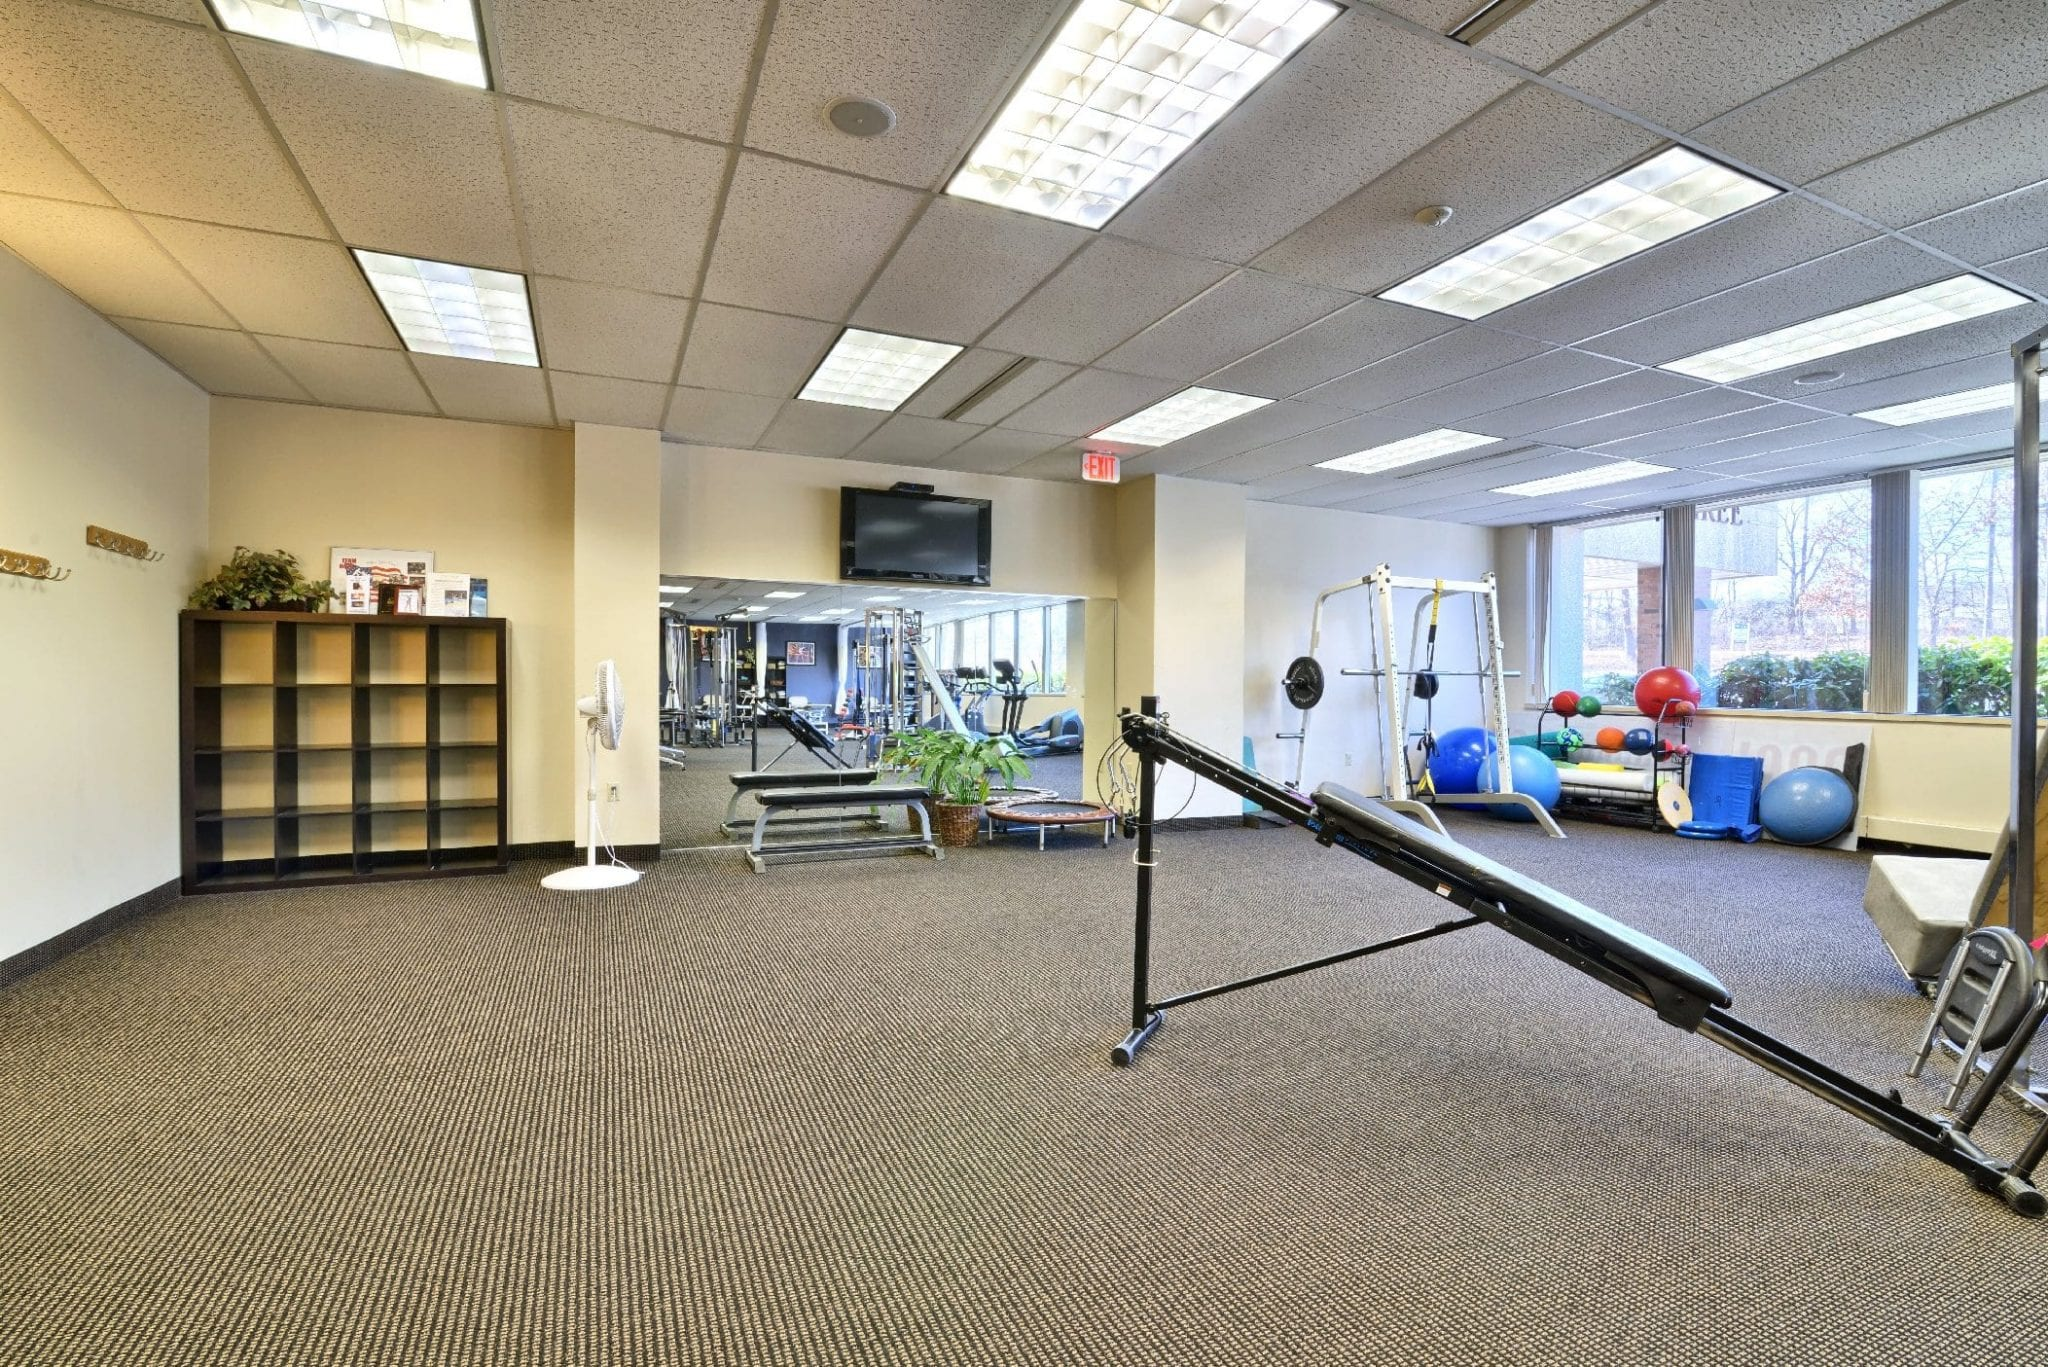 A photo of the interior of our physical therapy clinic in Farmington, Connecticut.